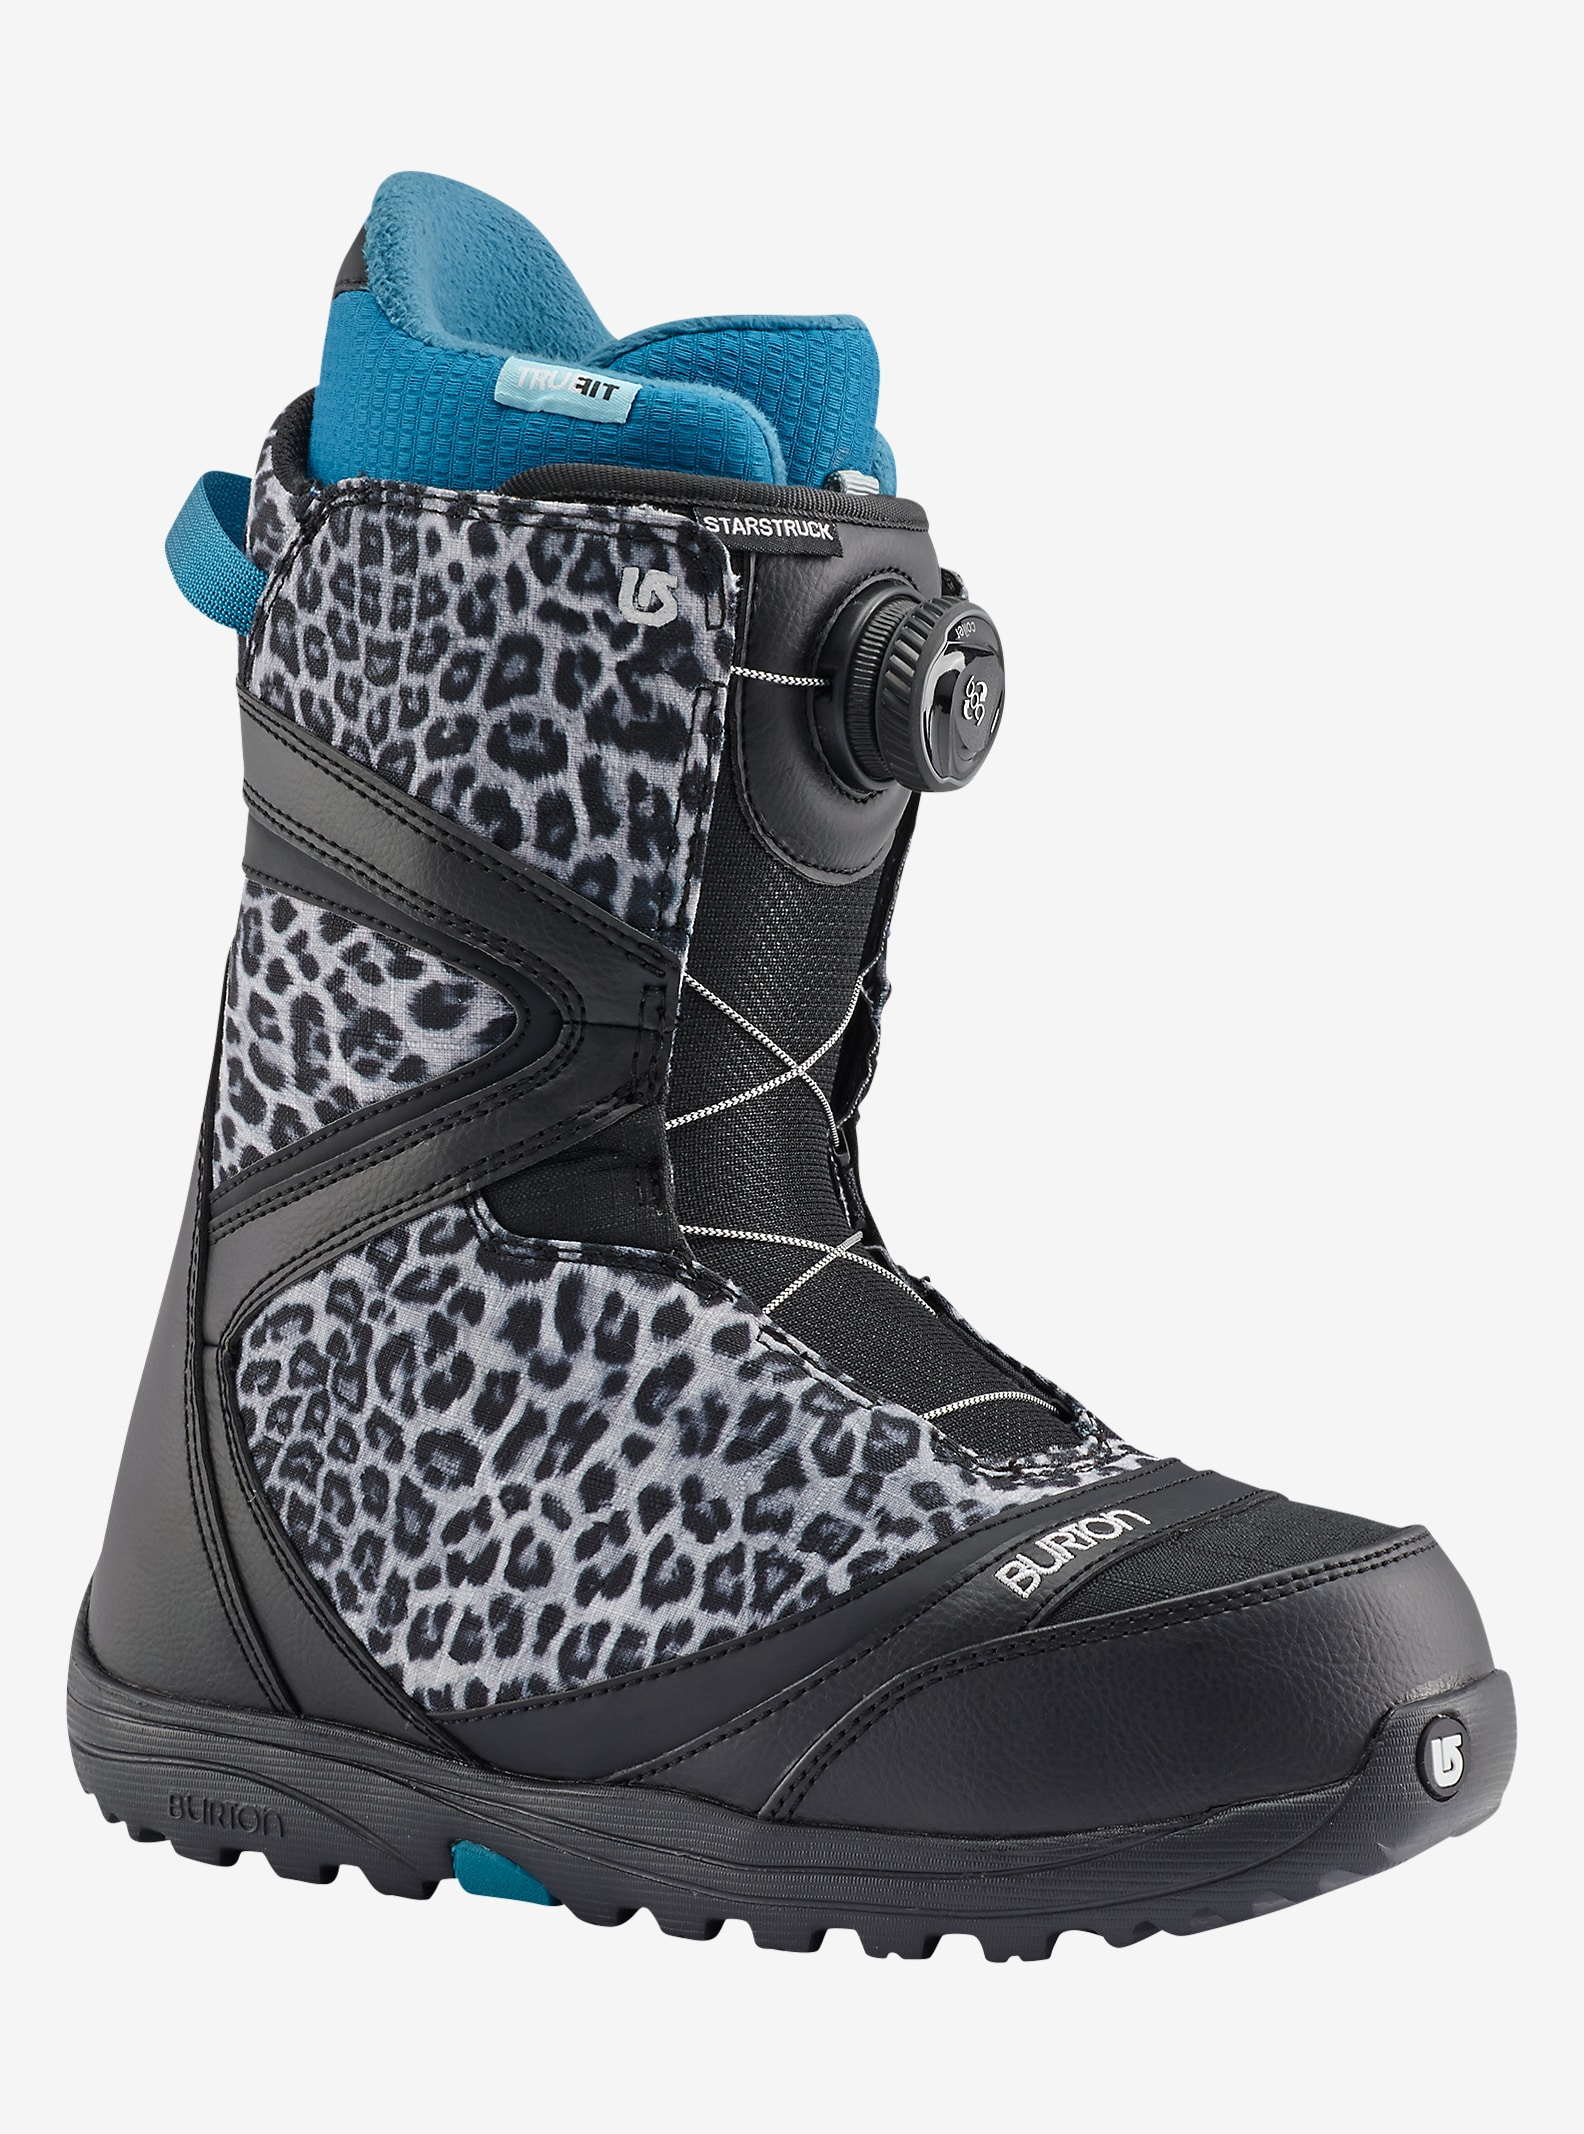 Burton Starstruck Boa® Snowboard Boot shown in Black / Snow Leopard